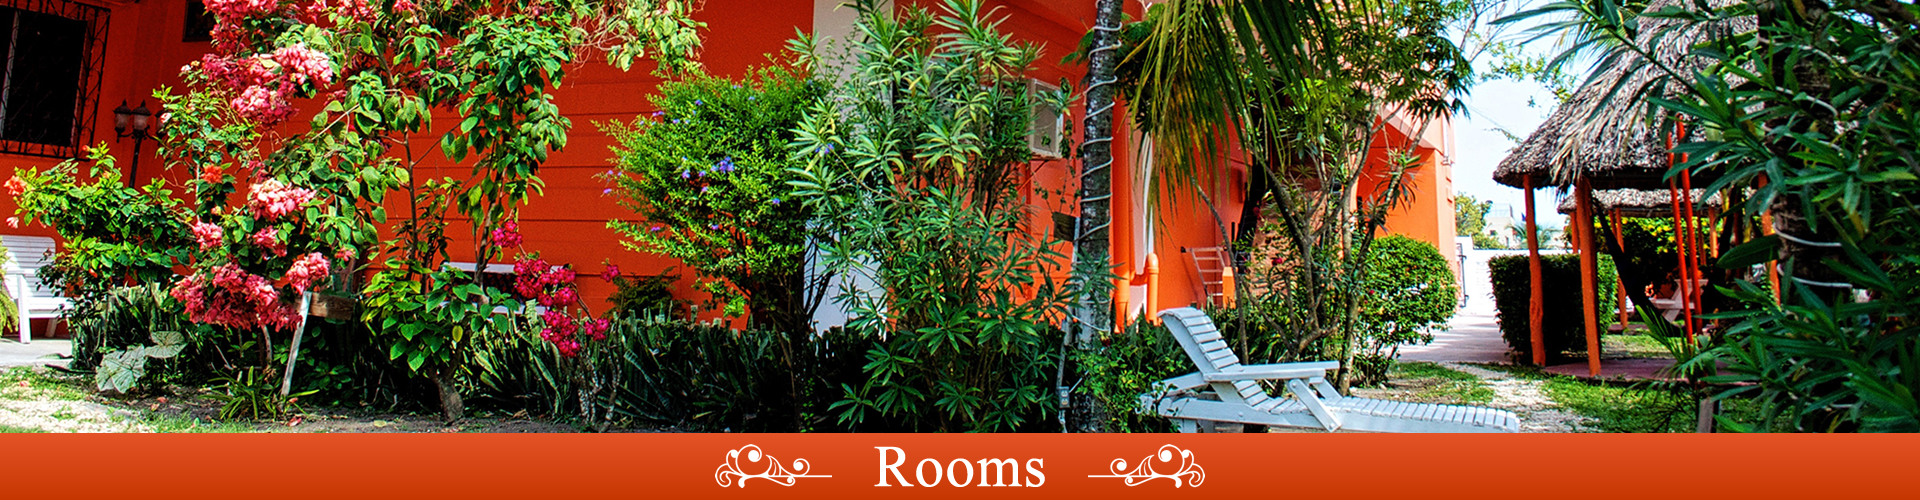 D-victoria-orange-walk-Belize-room-01